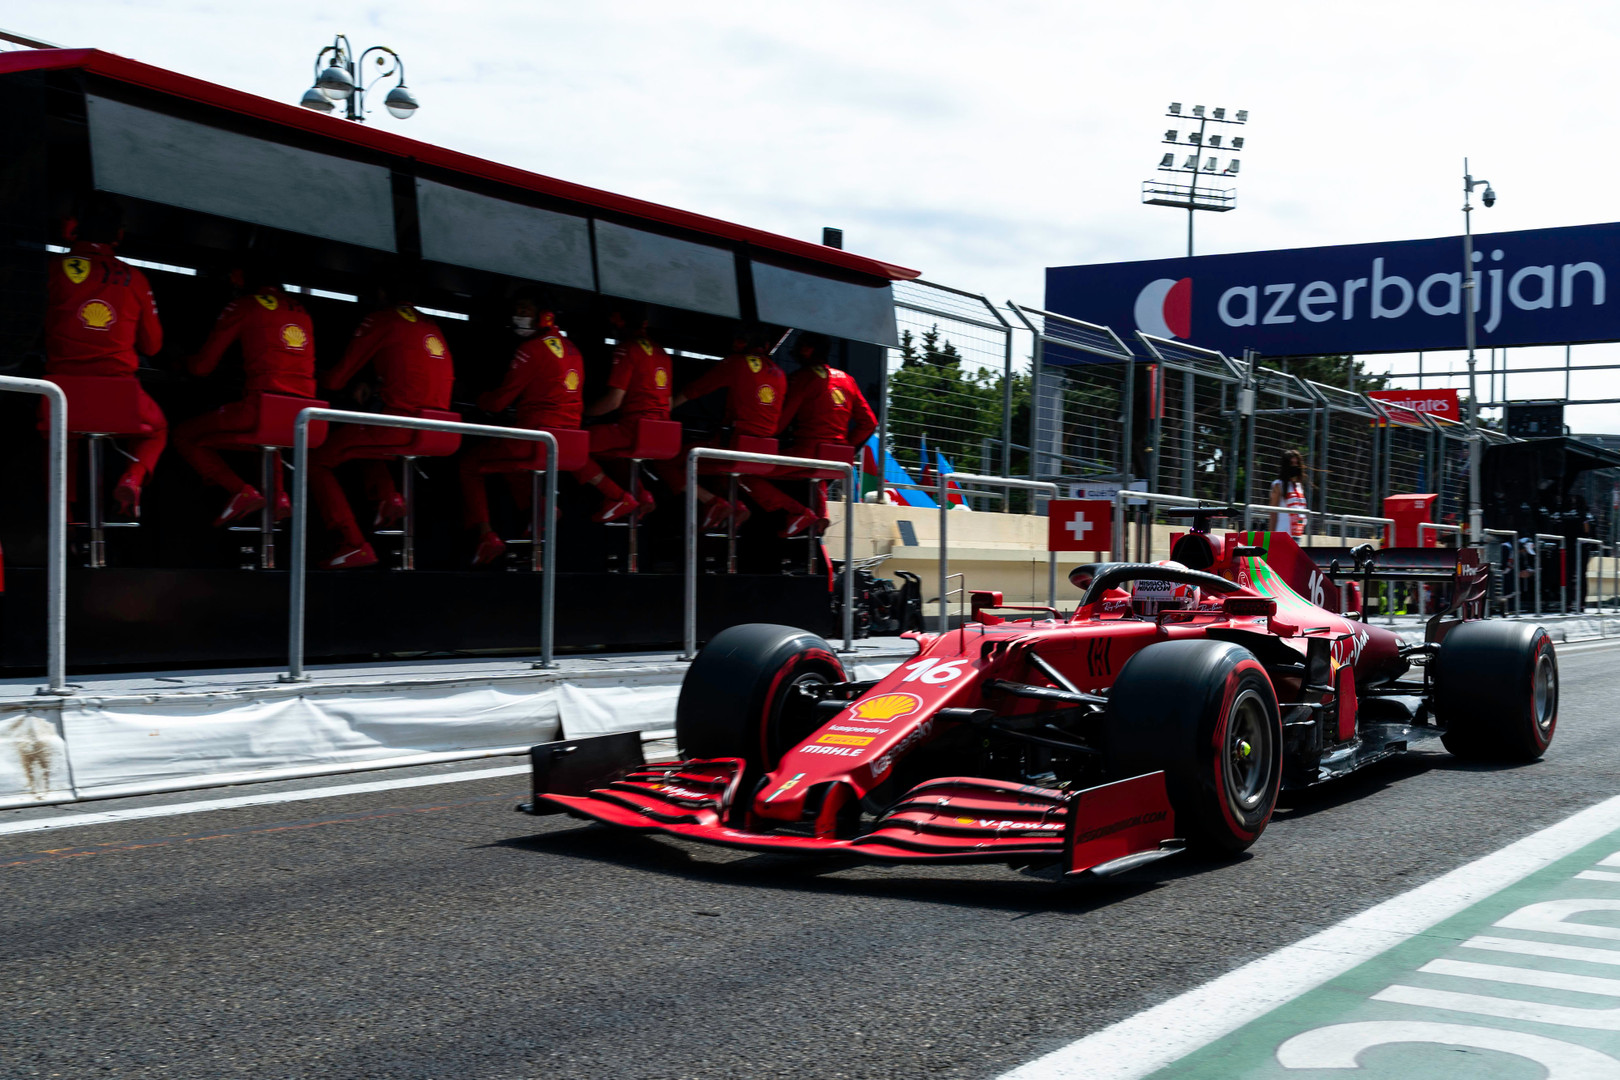 Ferrari: Back-to-back poles not a reflection of 'true performance'